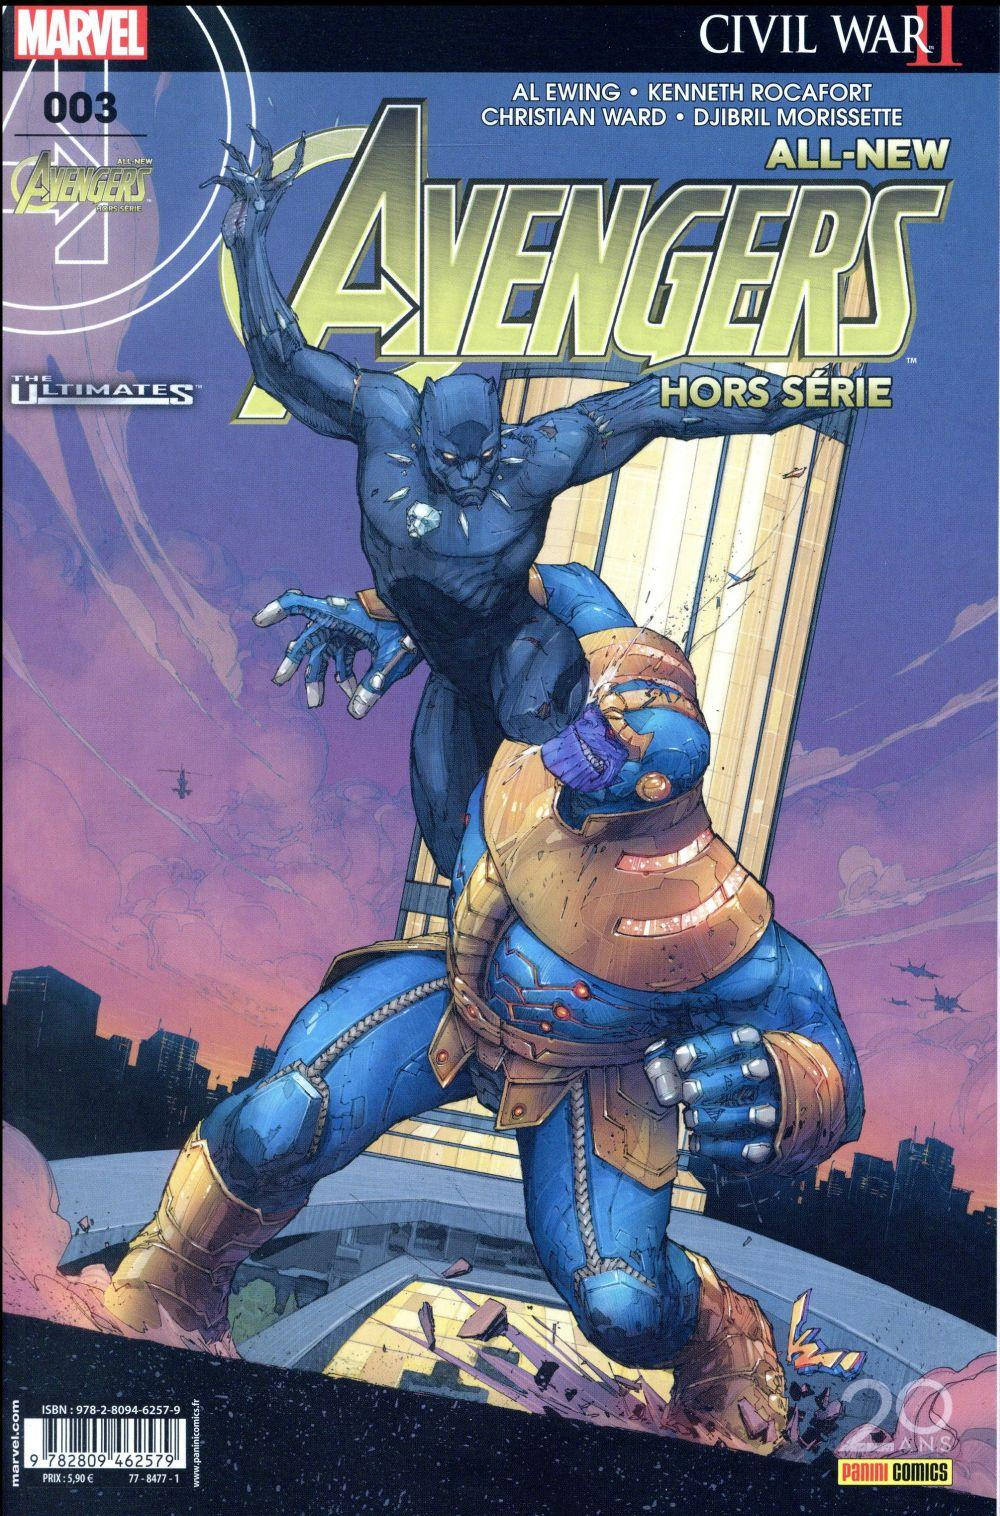 Vente Livre :                                    All-new Avengers HORS-SERIE N.3                                      - All-New Avengers